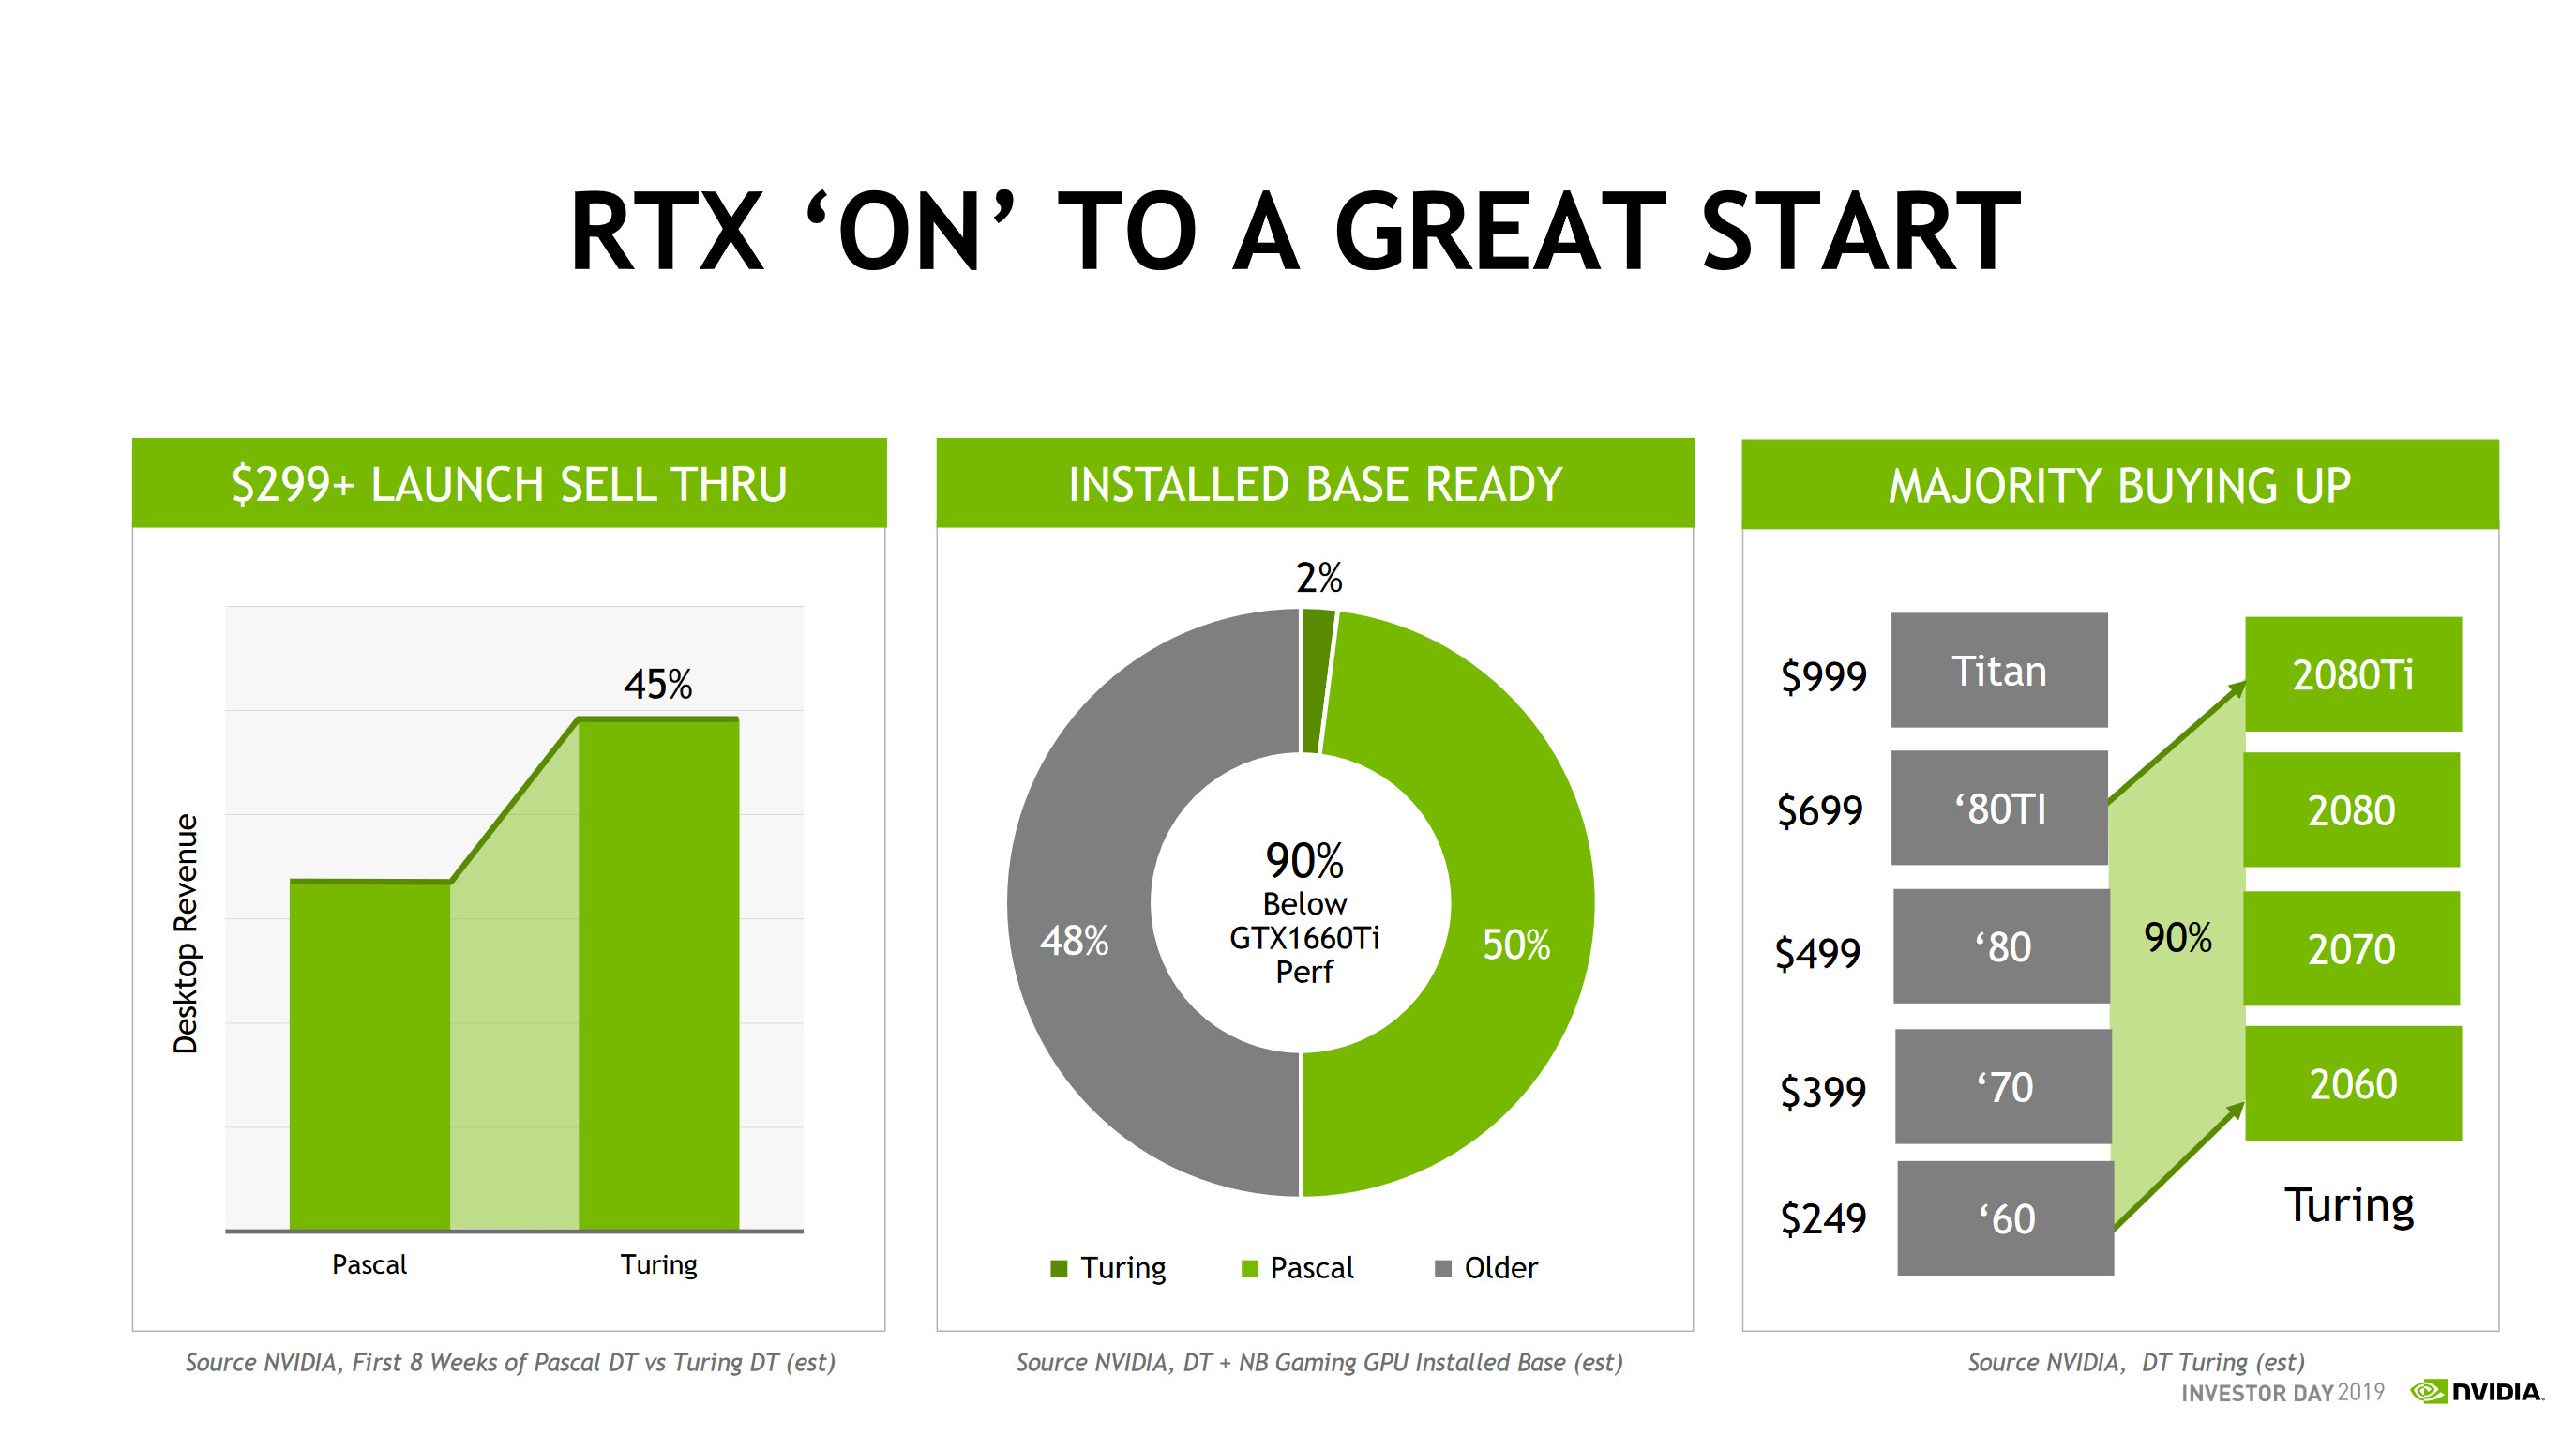 NVIDIA: Turing Adoption Rate 45% Higher Than Pascal, 90% of